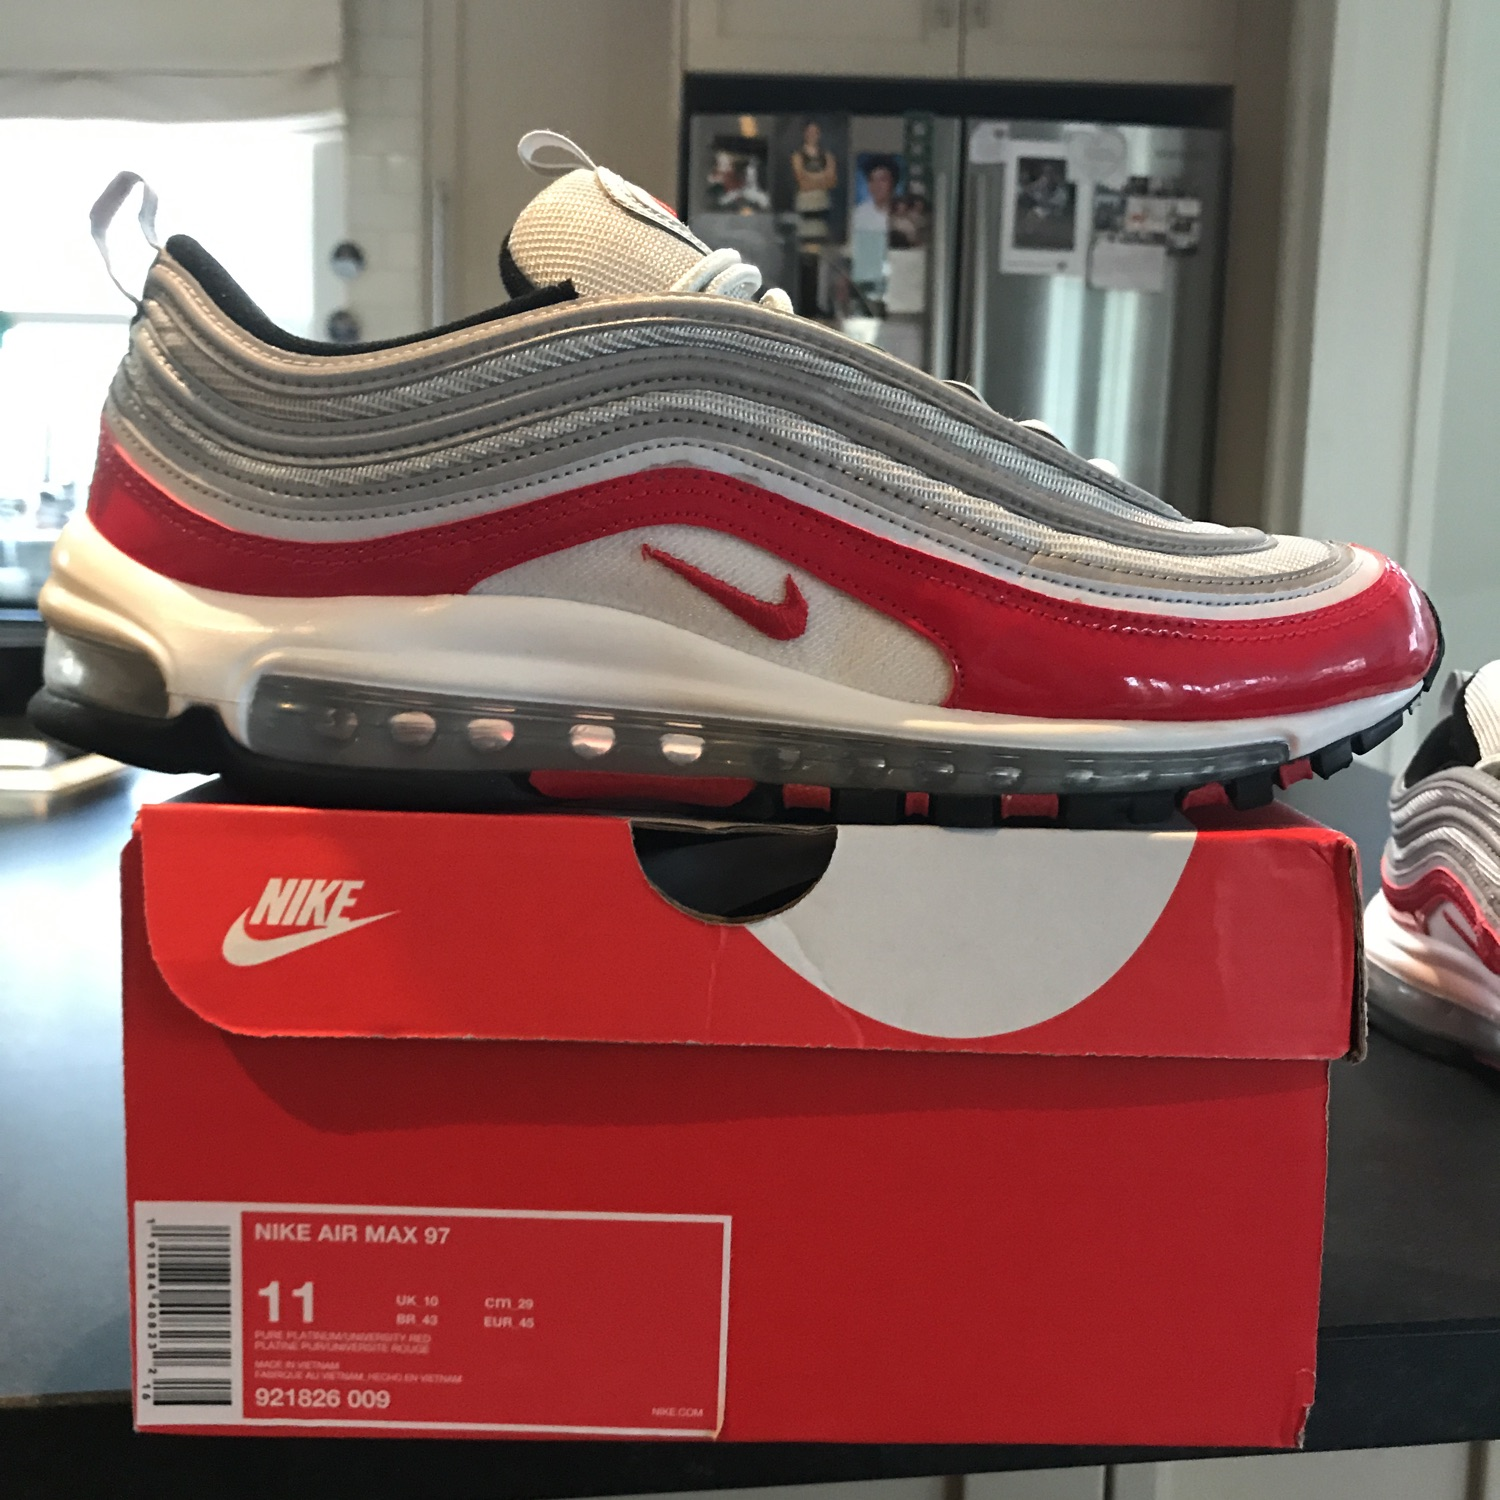 Nike Air Max 97 Steelers Where To Buy 921826 008 The